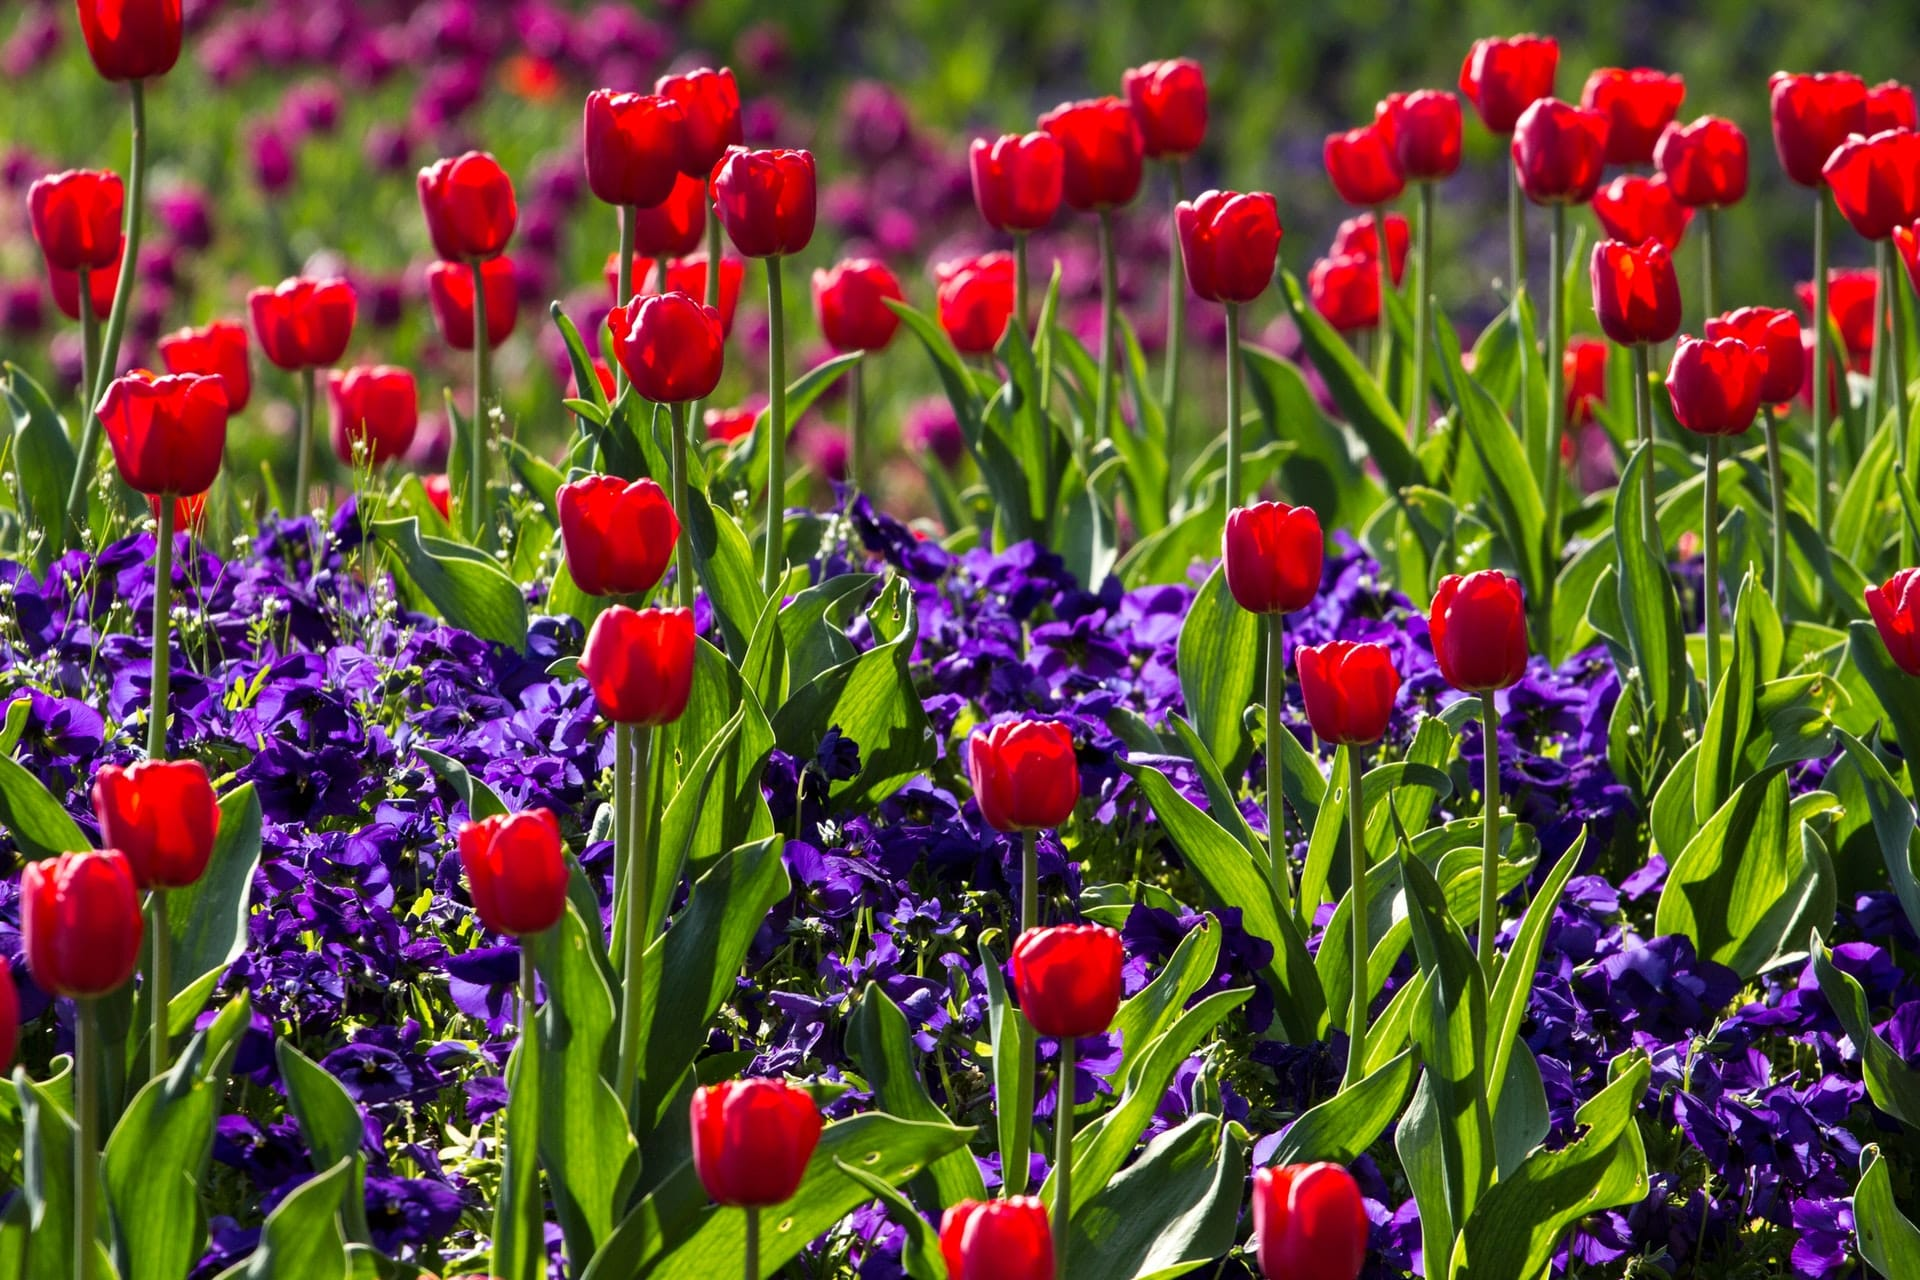 tulips-spring-light-colorful